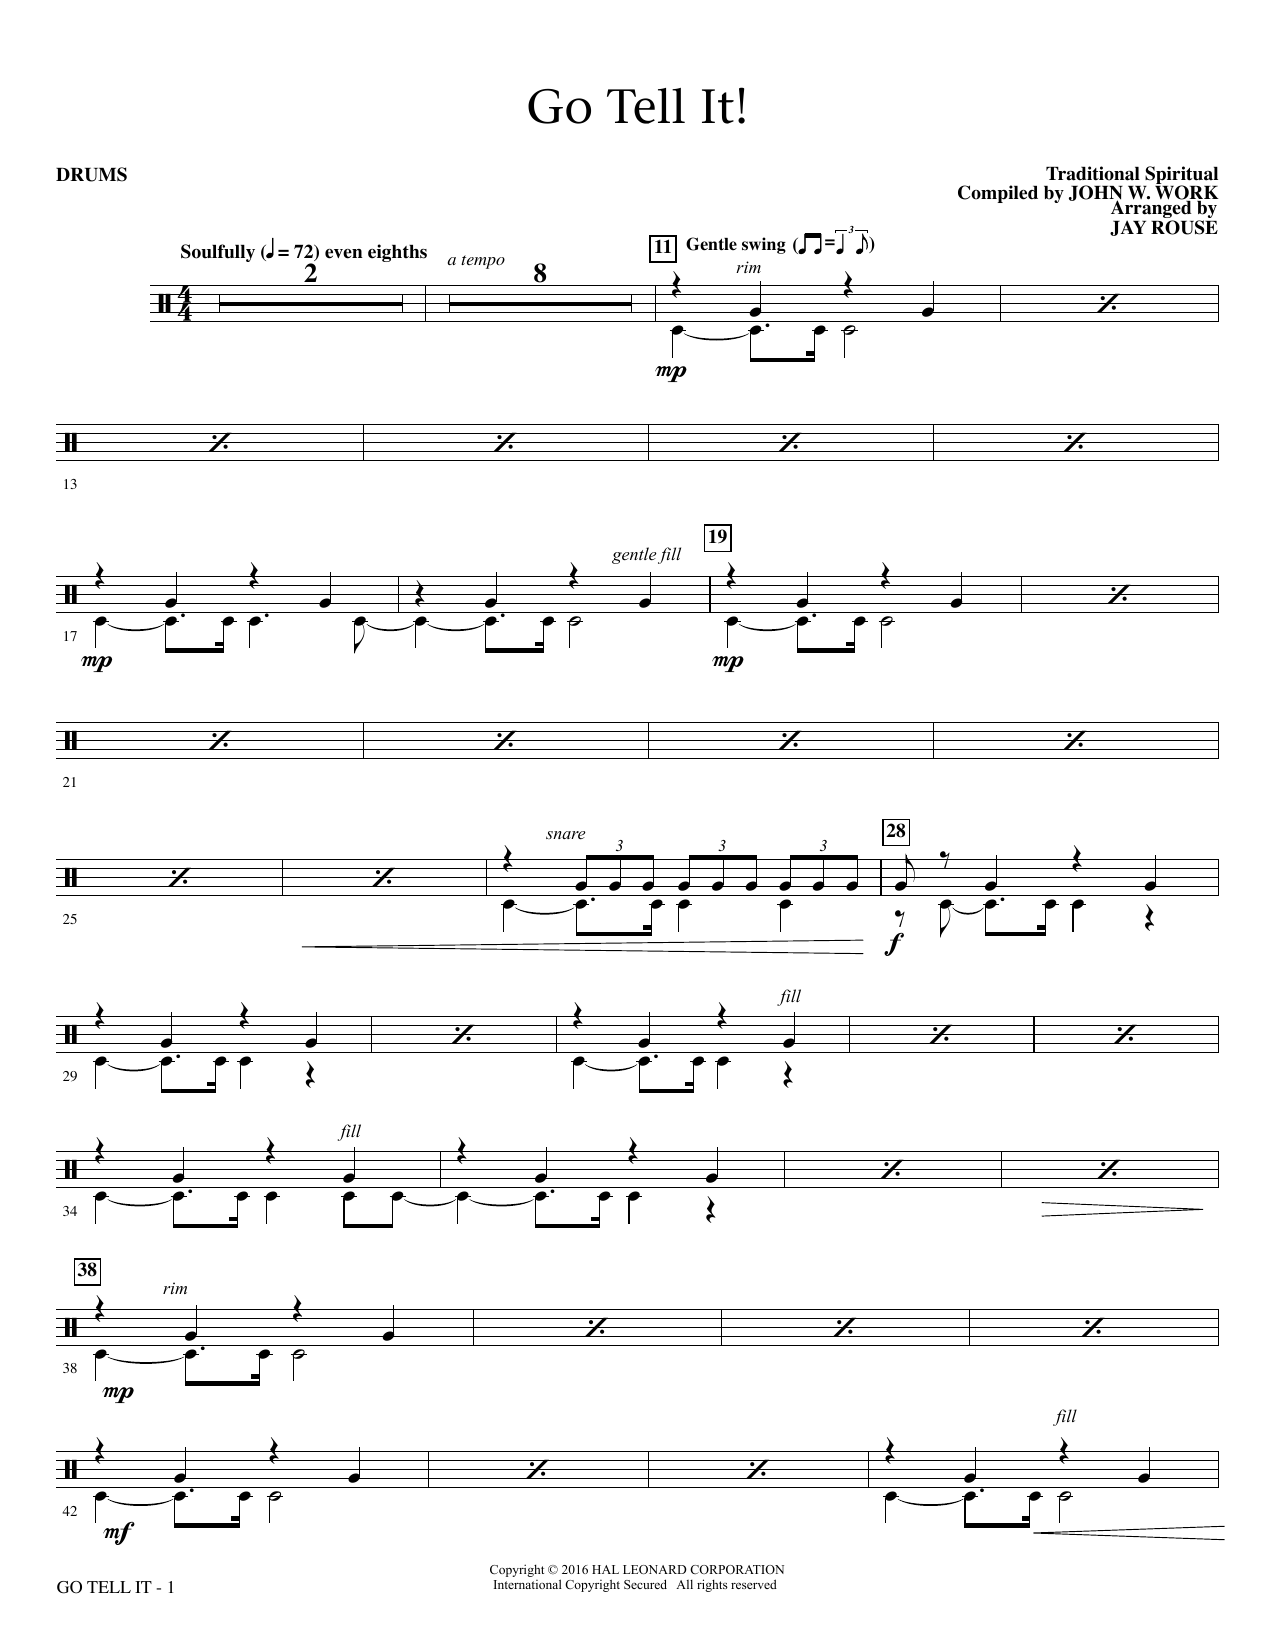 Go Tell It! - Drum Set Sheet Music